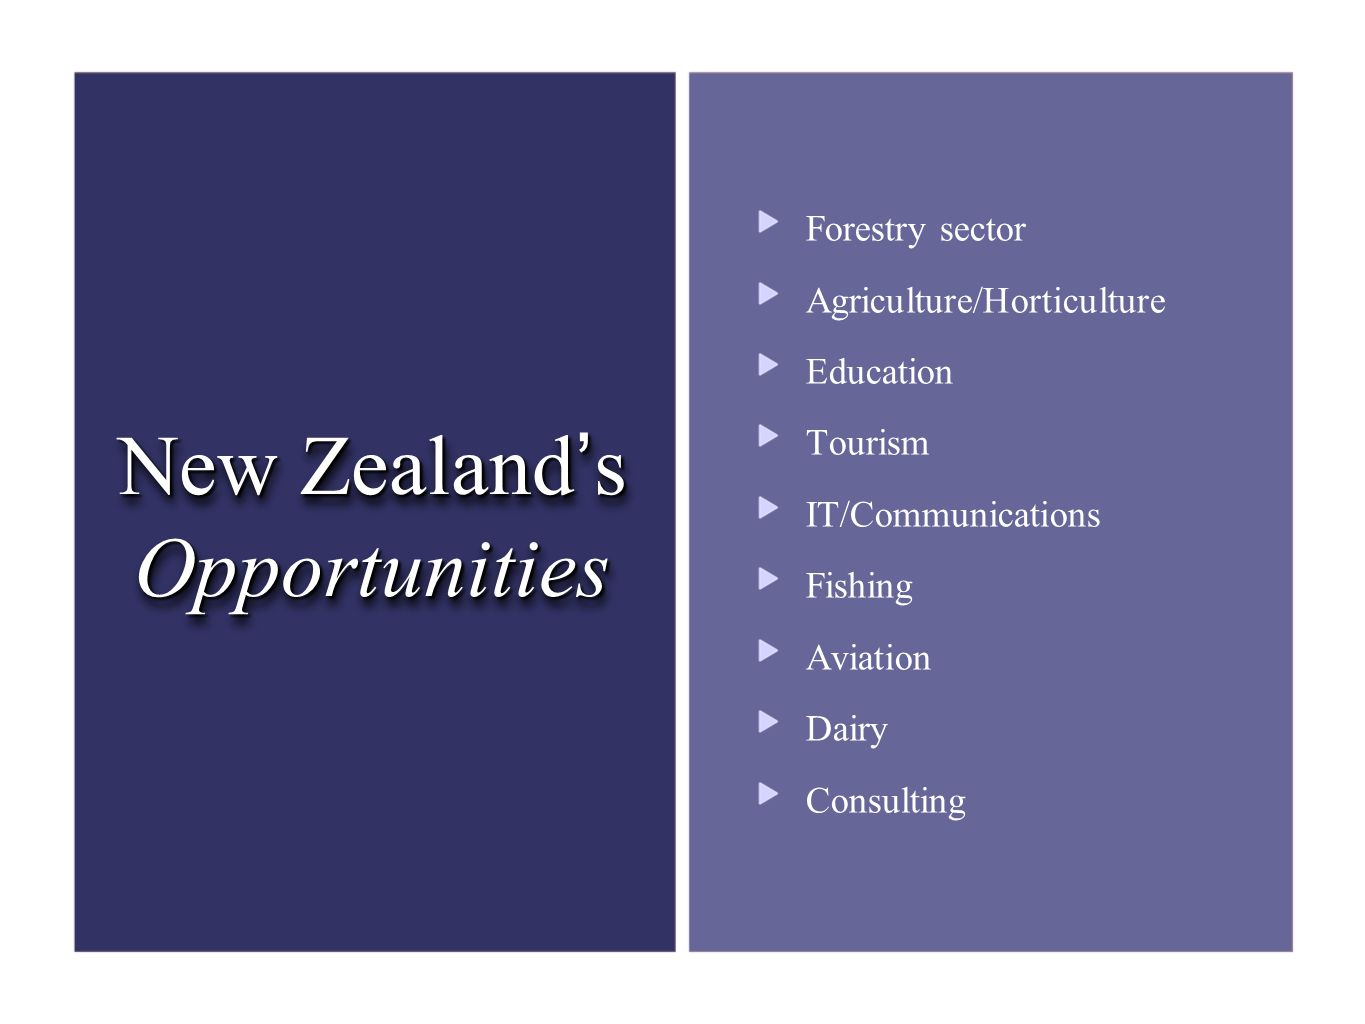 New Zealand's Opportunities Forestry sector Agriculture/Horticulture Education Tourism IT/Communications Fishing Aviation Dairy Consulting